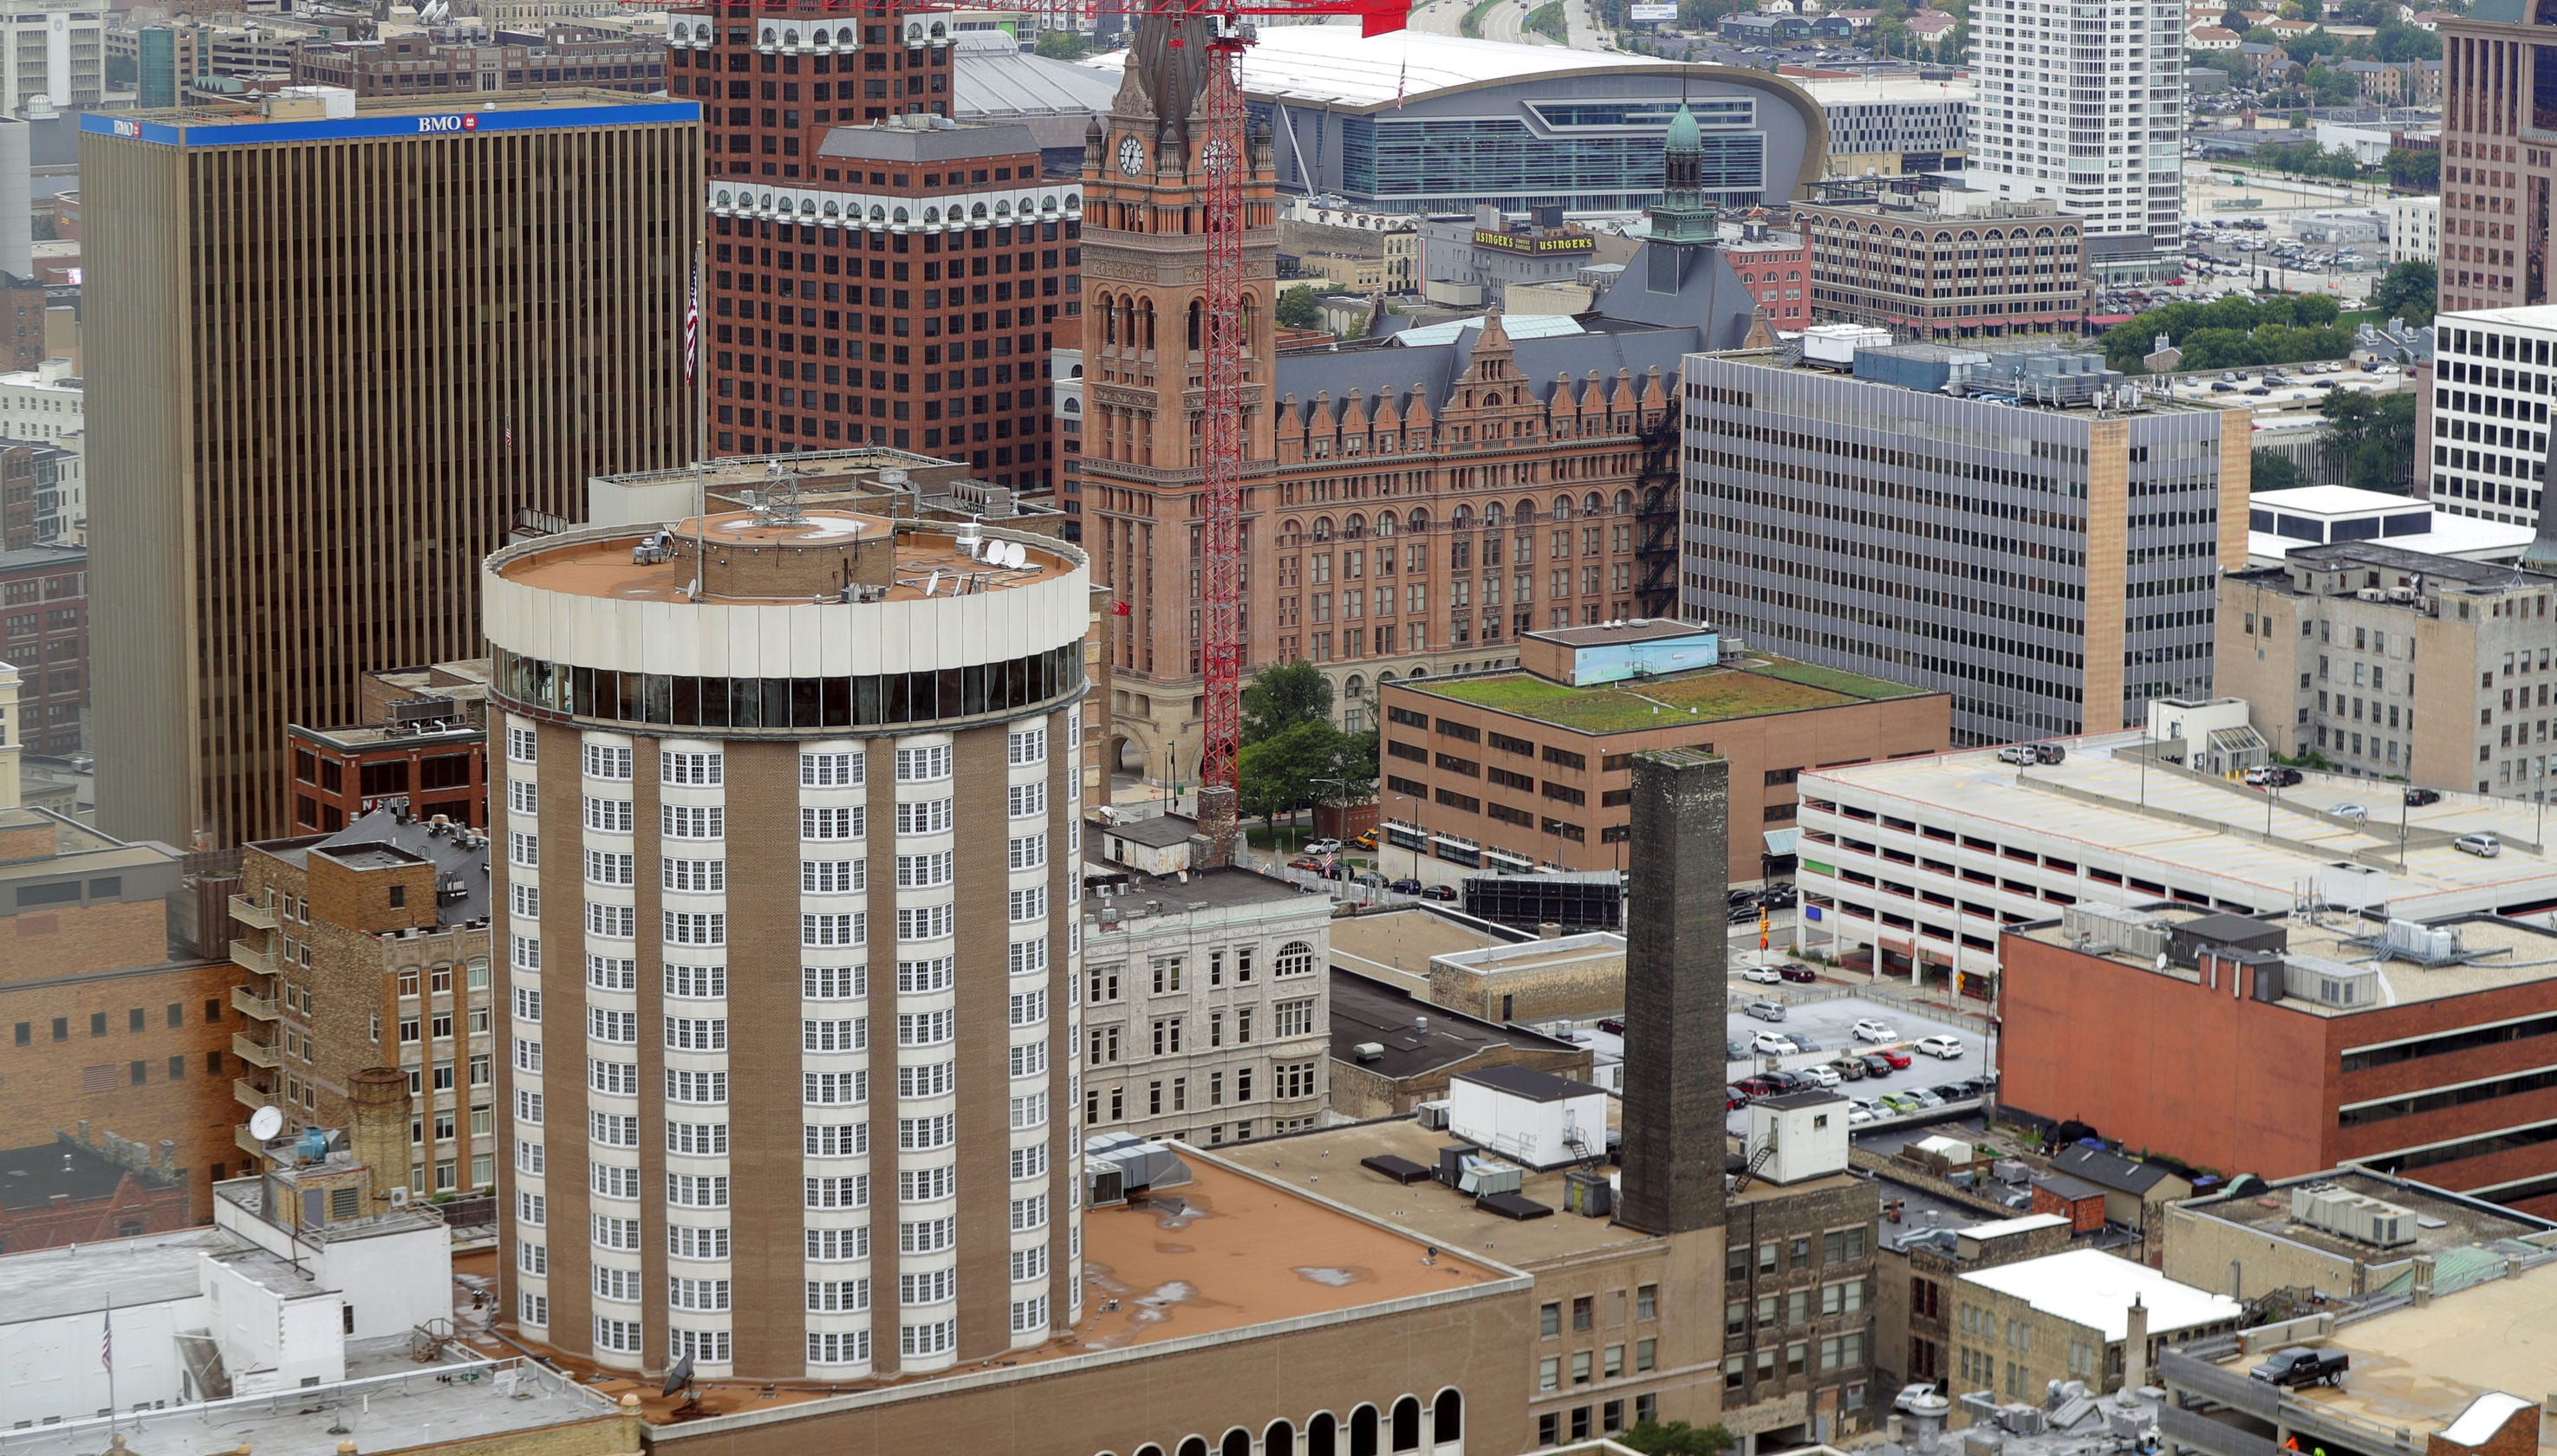 Milwaukee most segregated area in country, Brookings